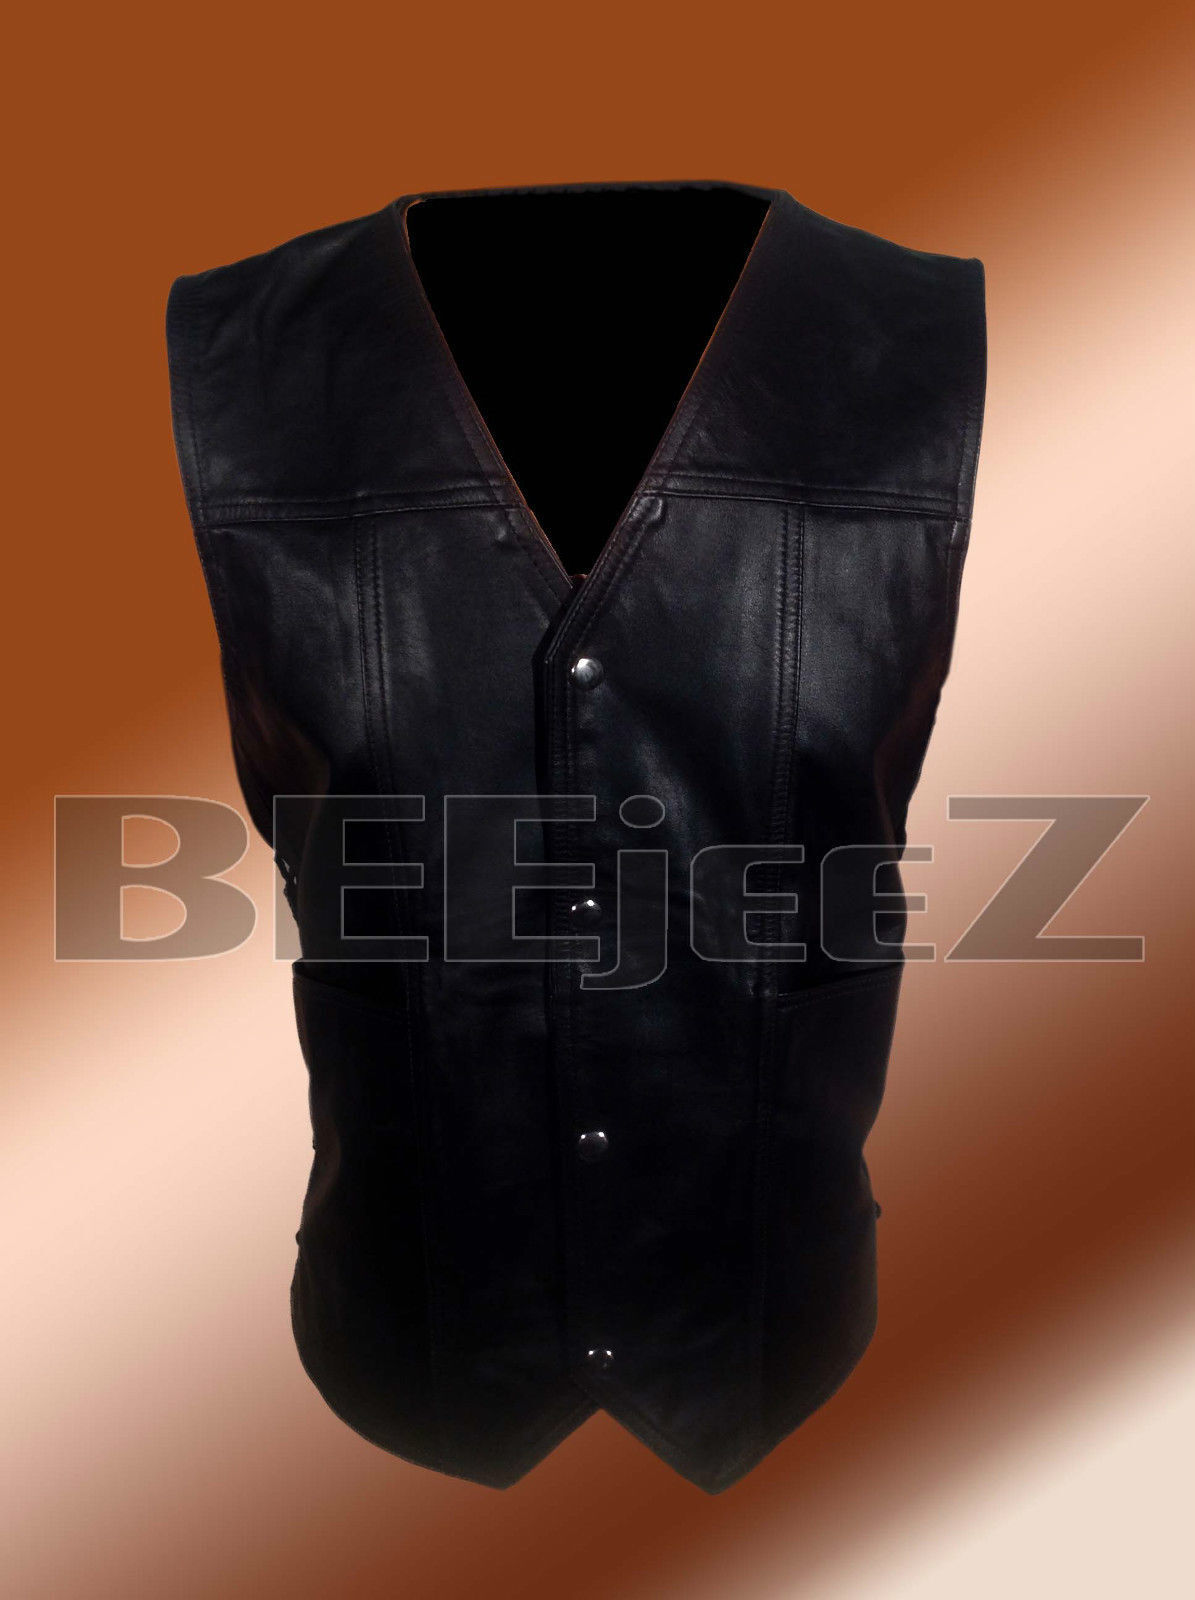 Il WALKING DEAD governatore DARYL Giacca DIXON ali d'angelo in Pelle Gilet Giacca DARYL Elegante e7bc12